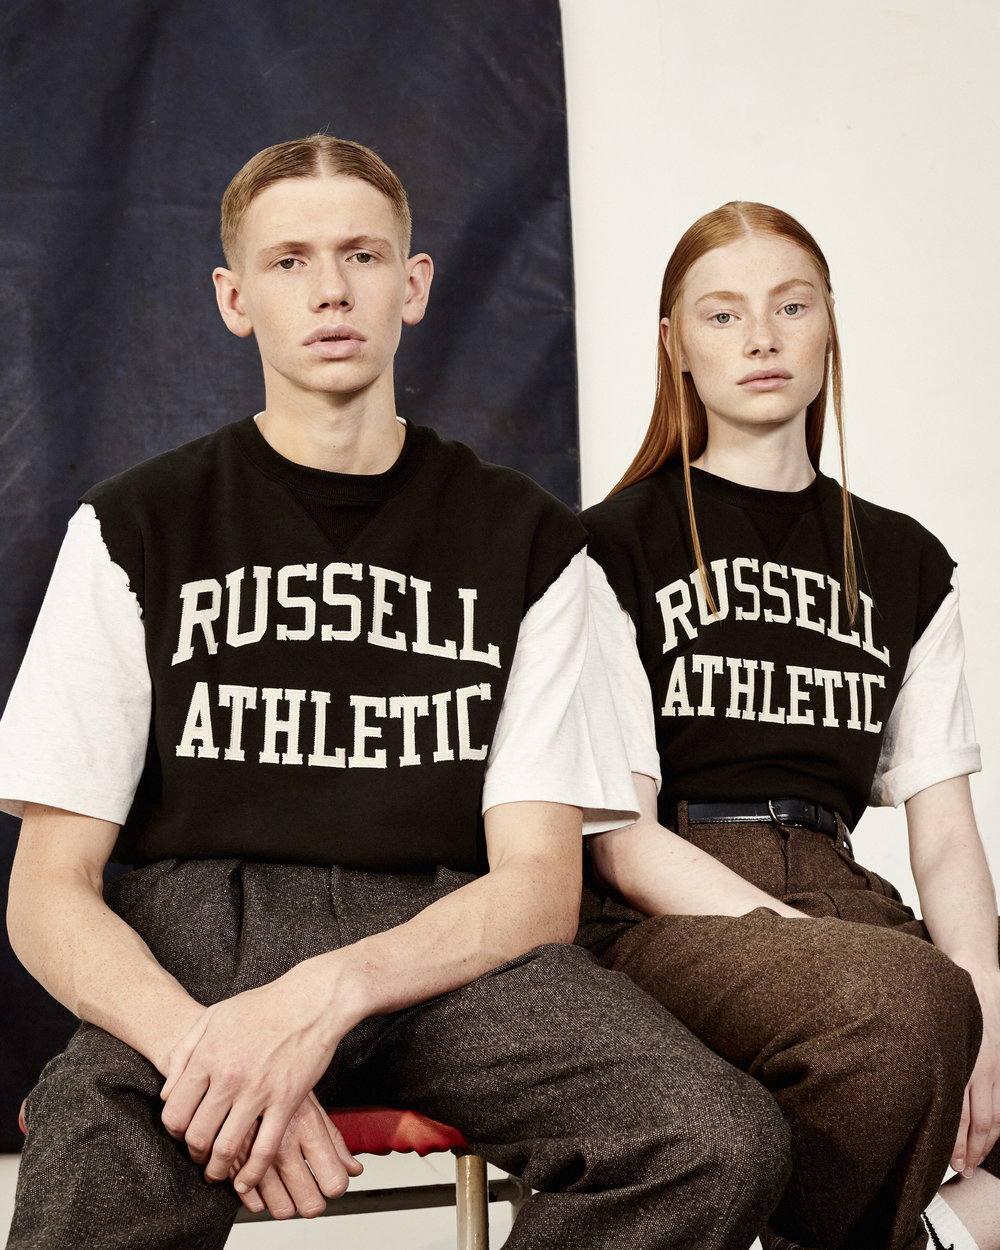 RUSSELL ATHLETIC SS1810589.jpg